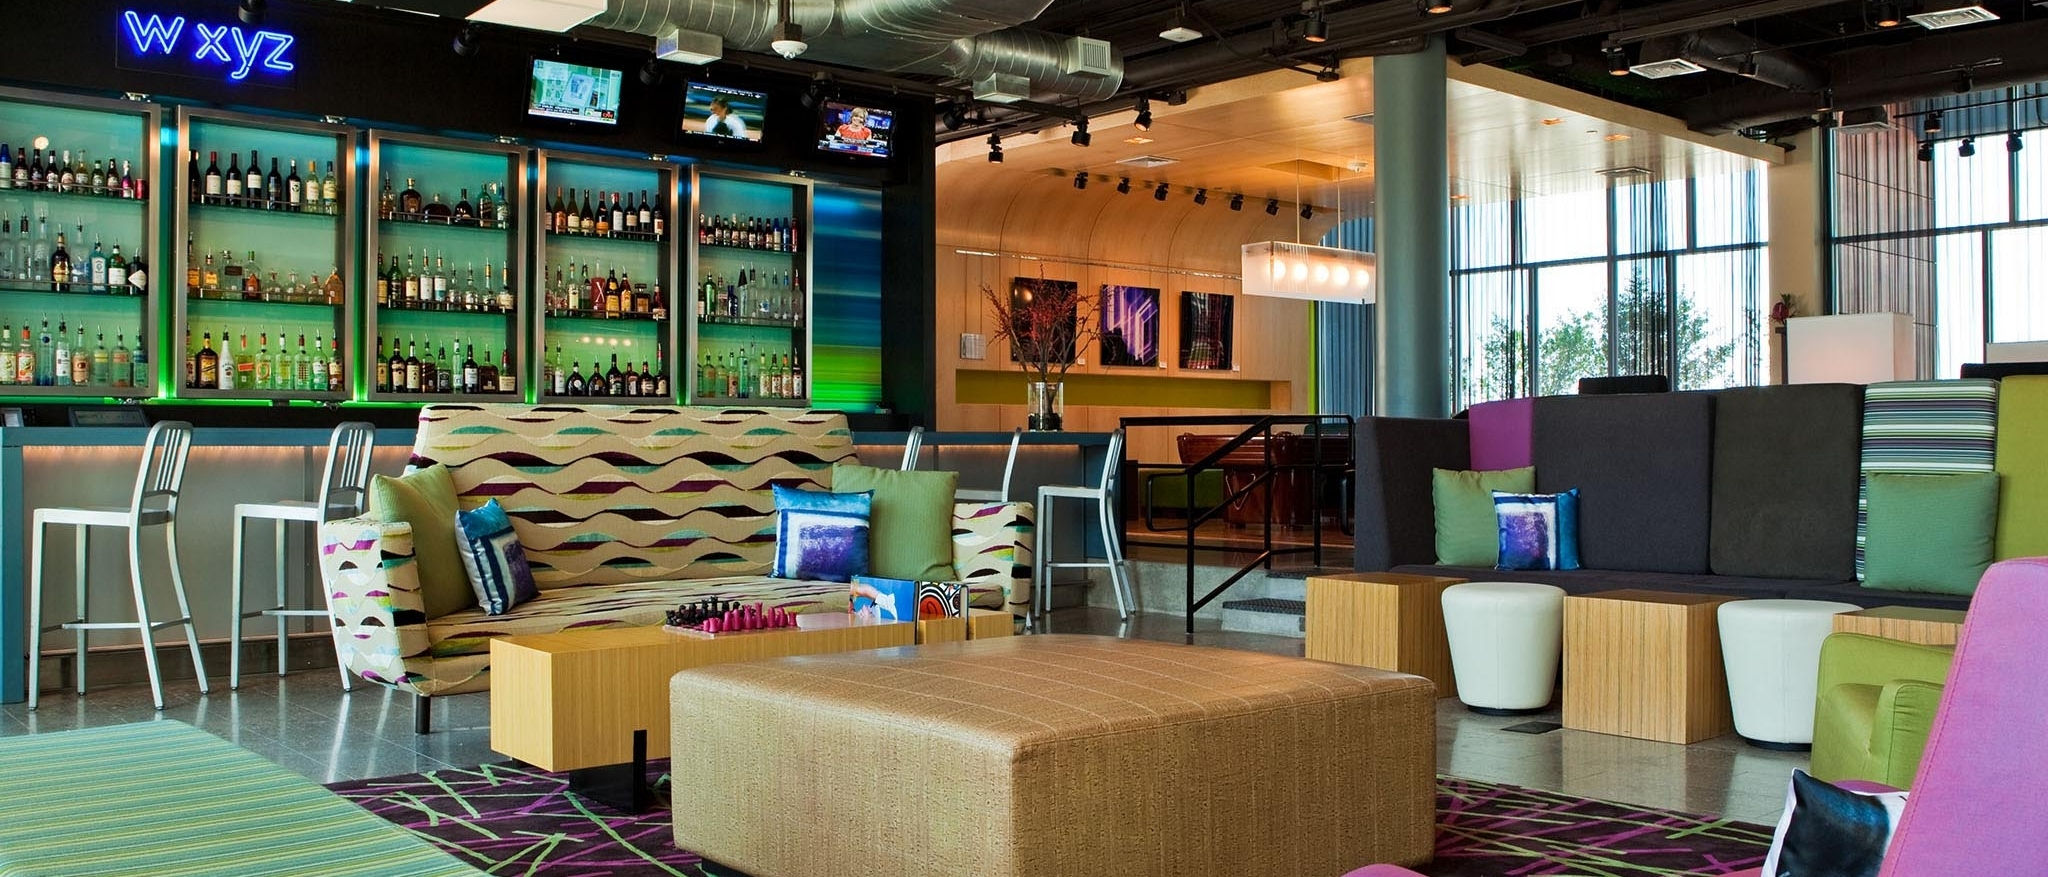 Aloft Plano - Re:mix lounge